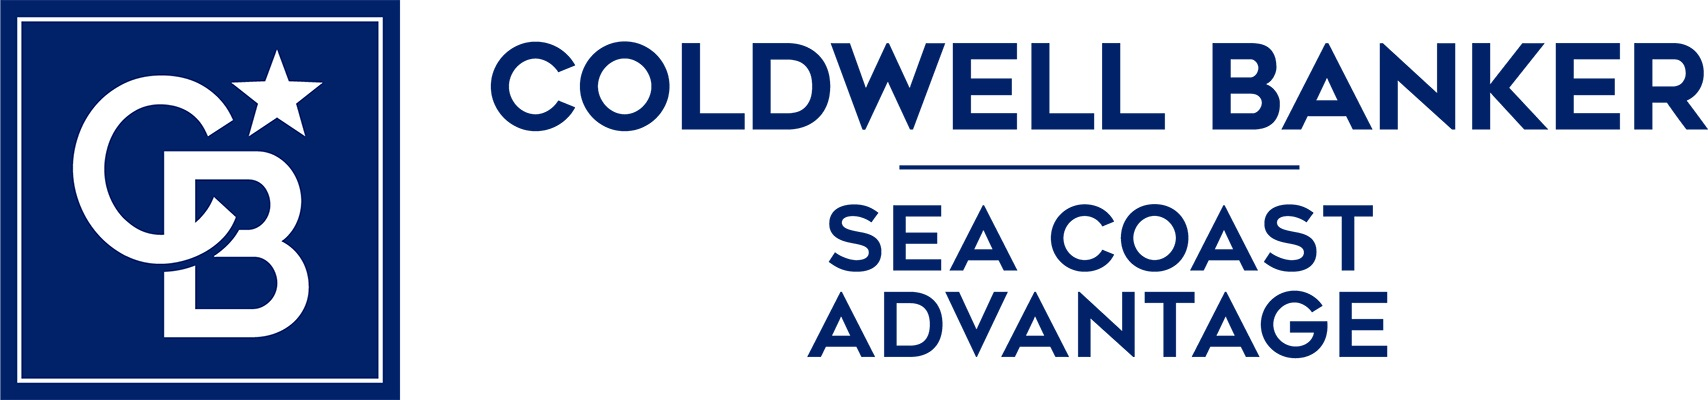 Neva Cardwell - Coldwell Banker Sea Coast Advantage Realty